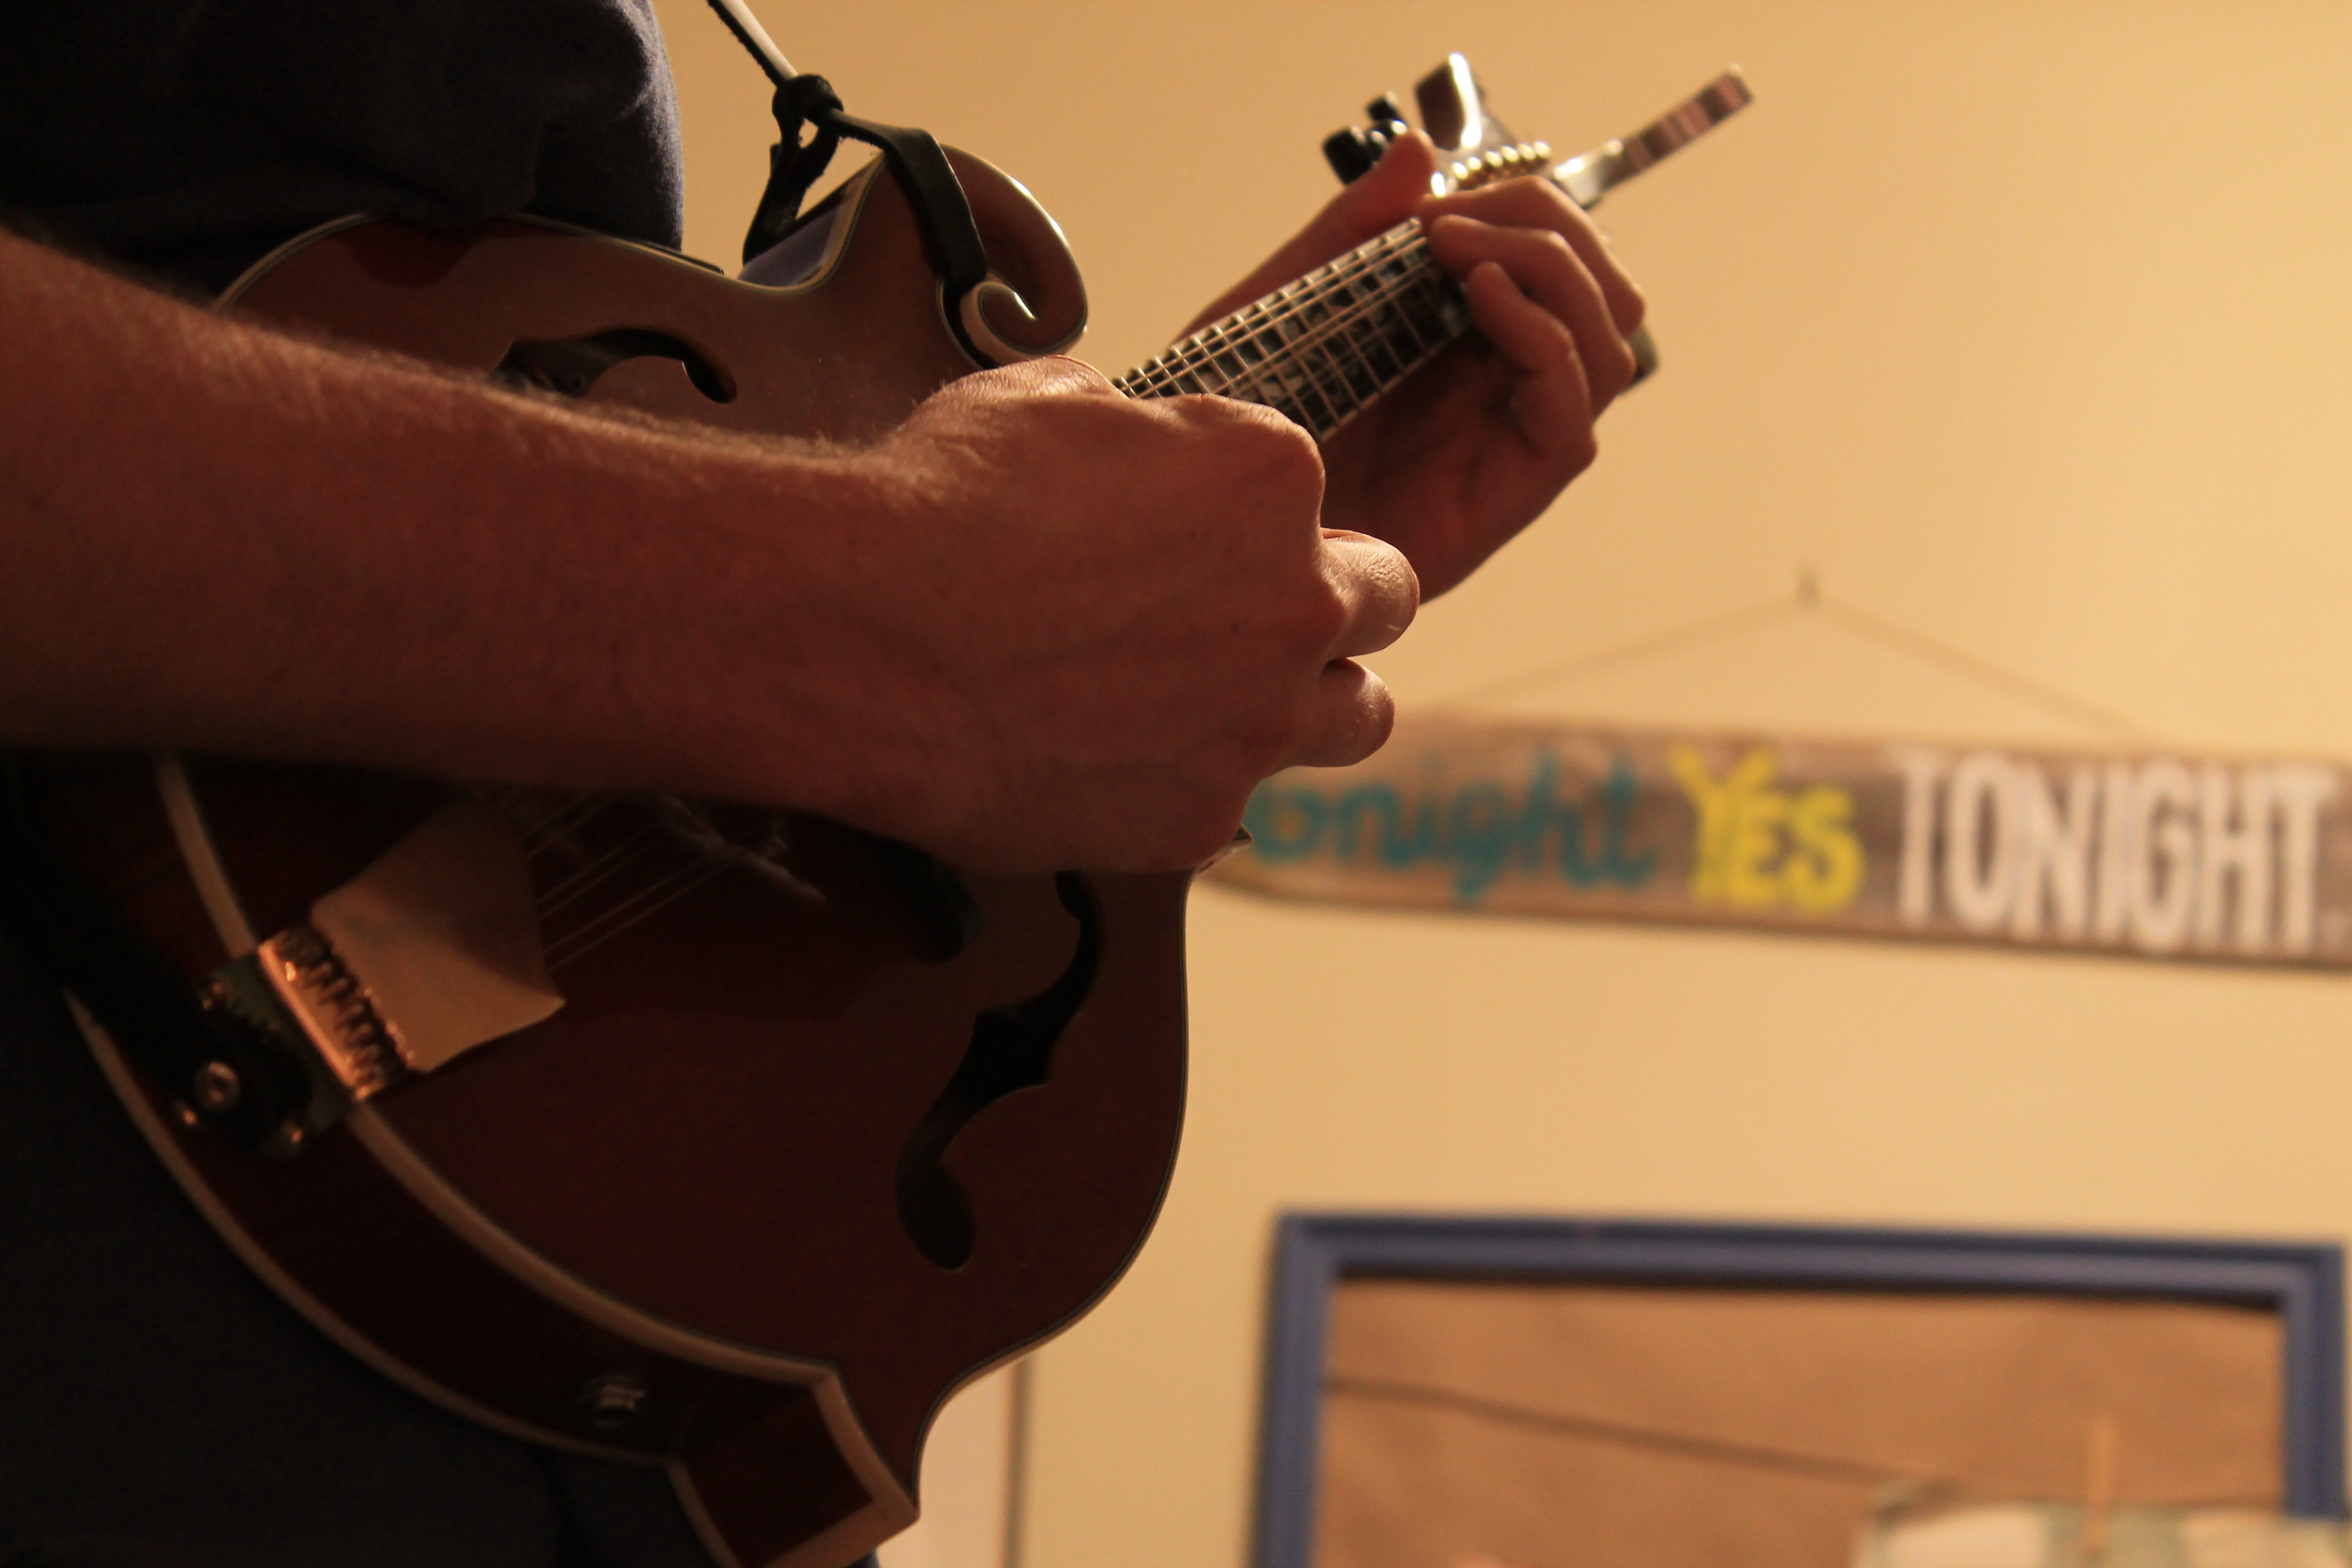 Josh plucks the mandolin, a key part in Friendly Savages' musical style.